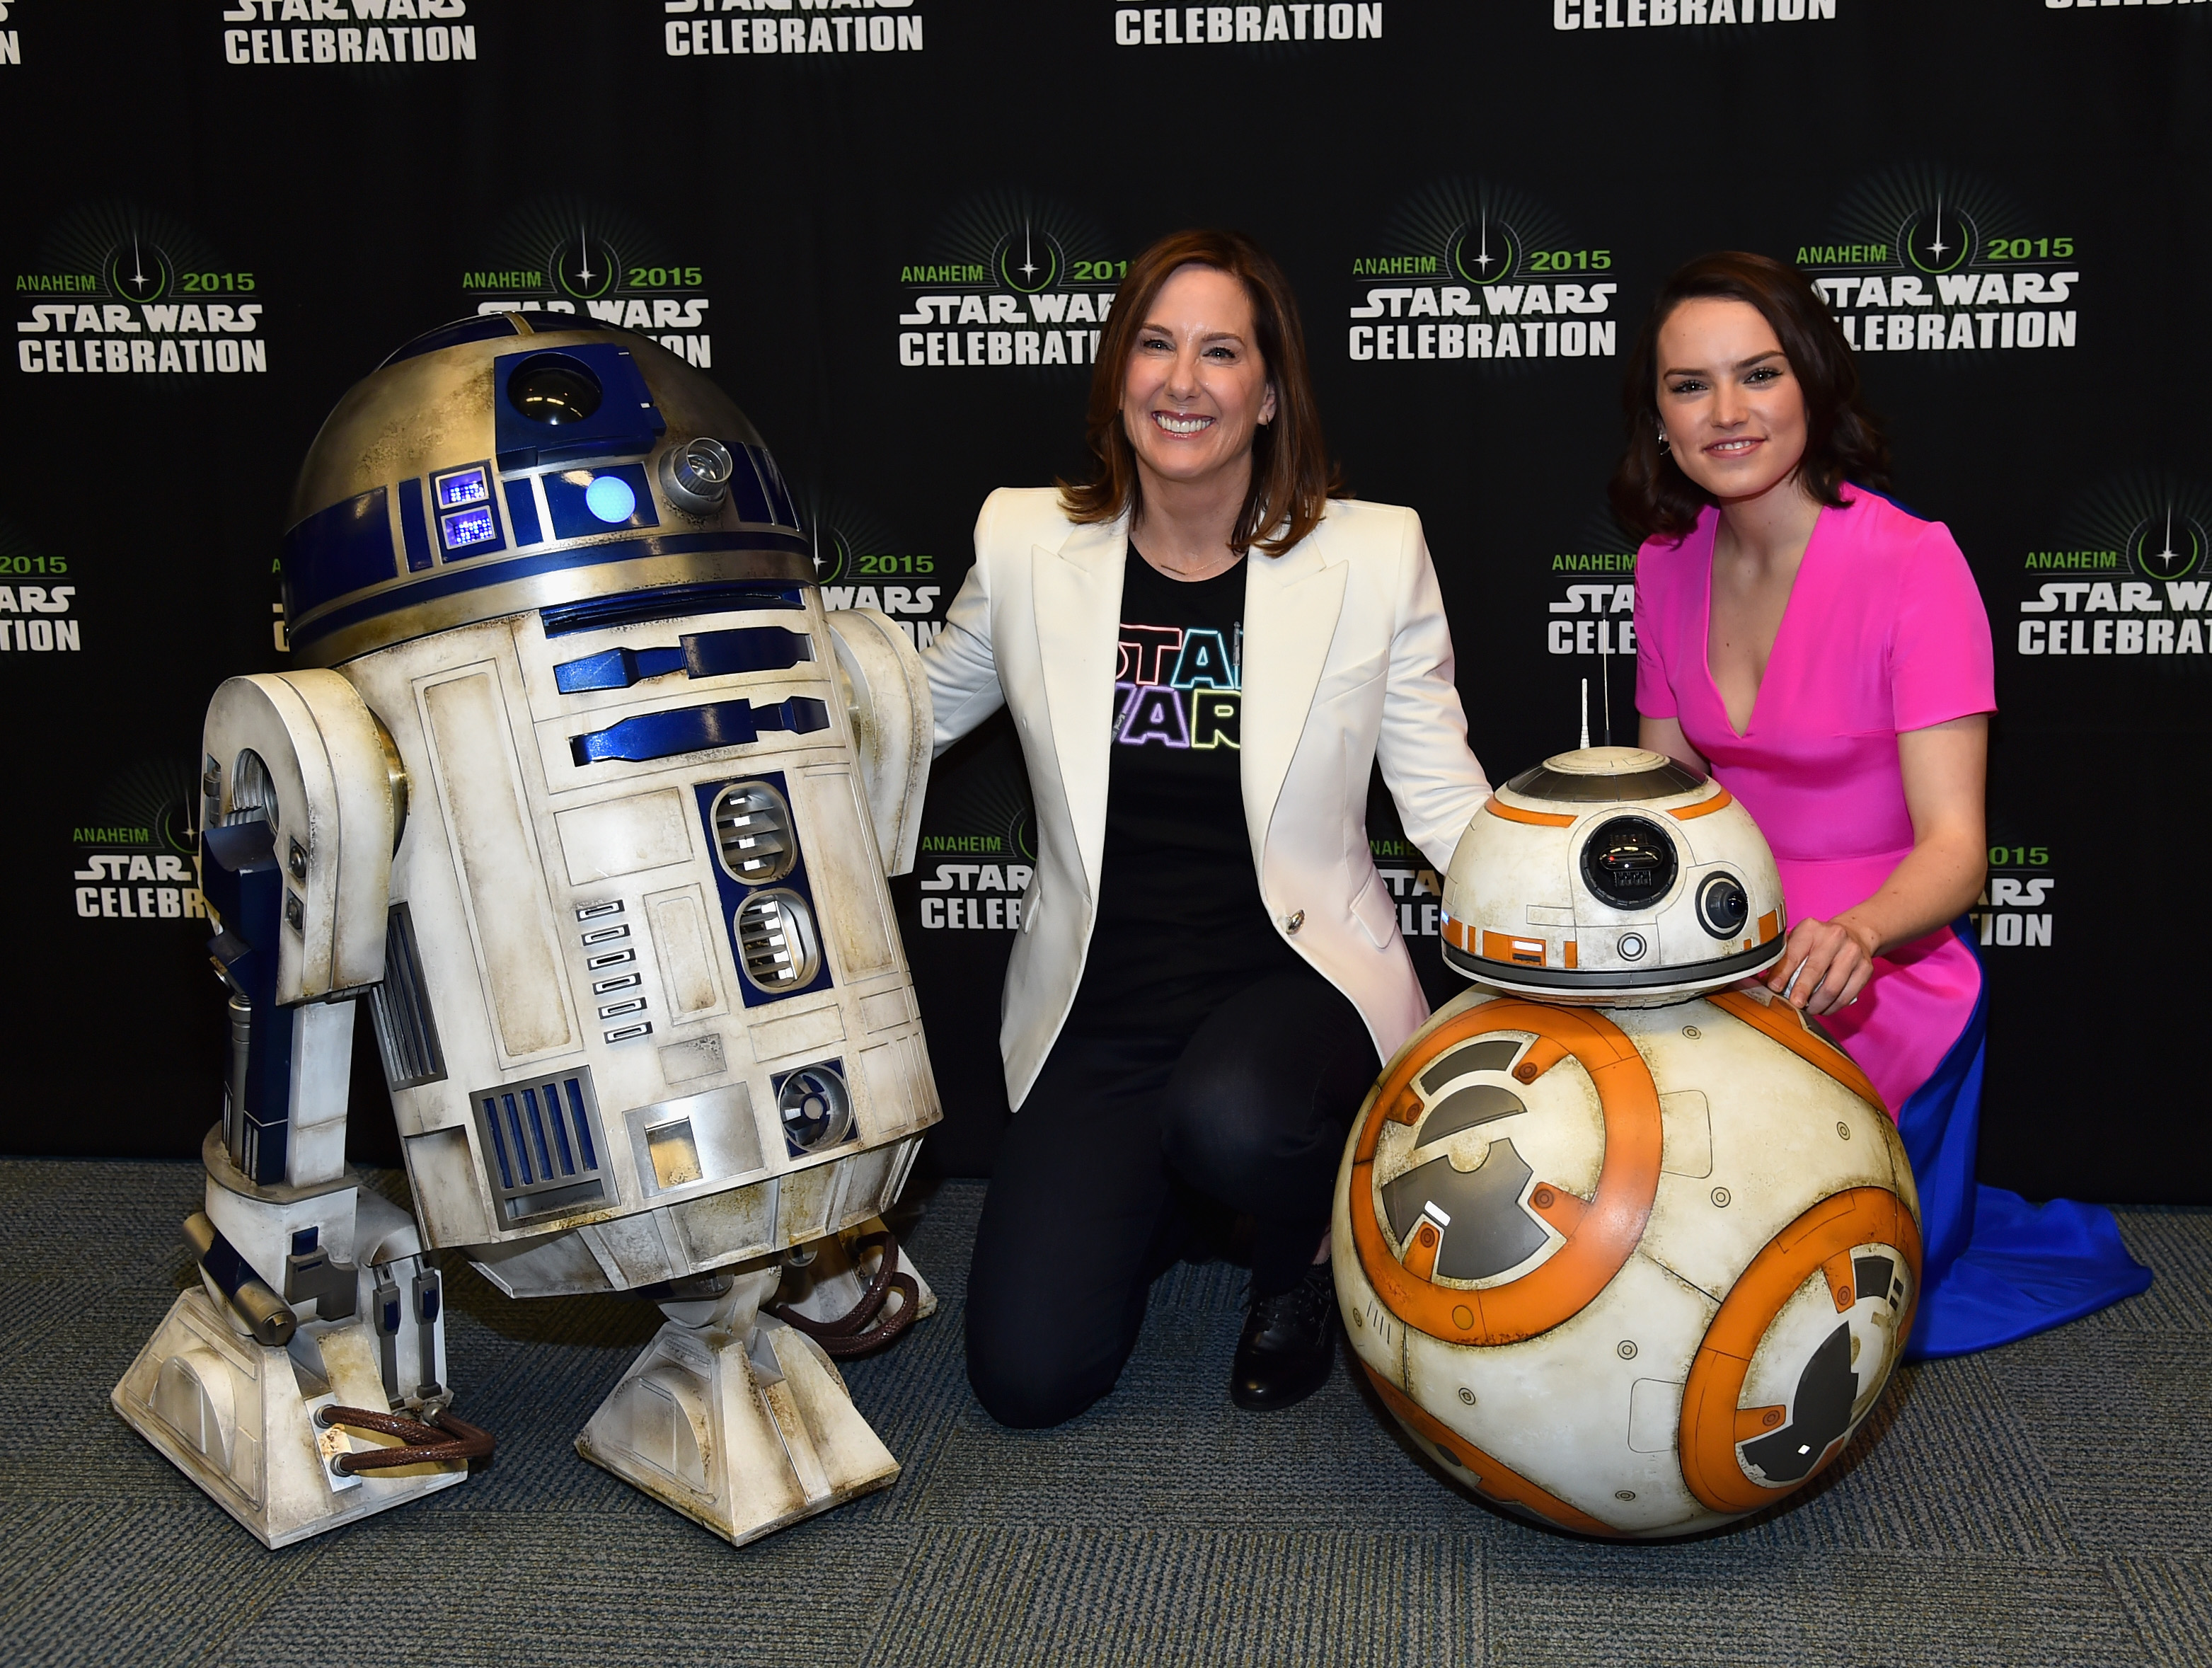 R2D2 BB-8 and Daisy Ridley at The Star Wars Celebration